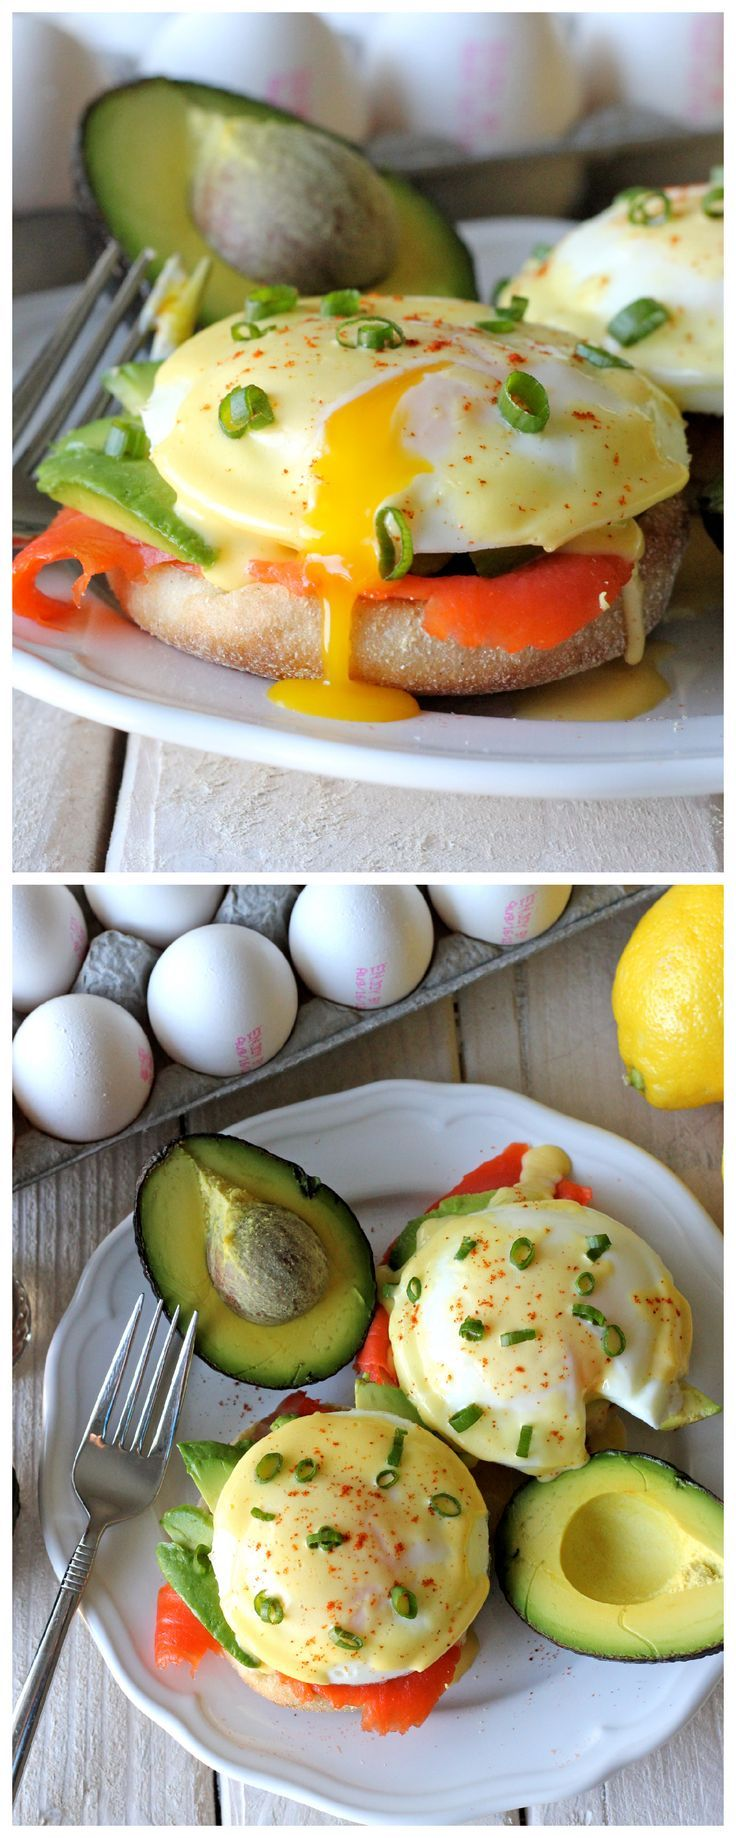 Smoked Salmon Eggs Benedict - No need to overpay for restaurant eggs benedict anymore. This homemade version is easy, tastier, and so much cheaper!